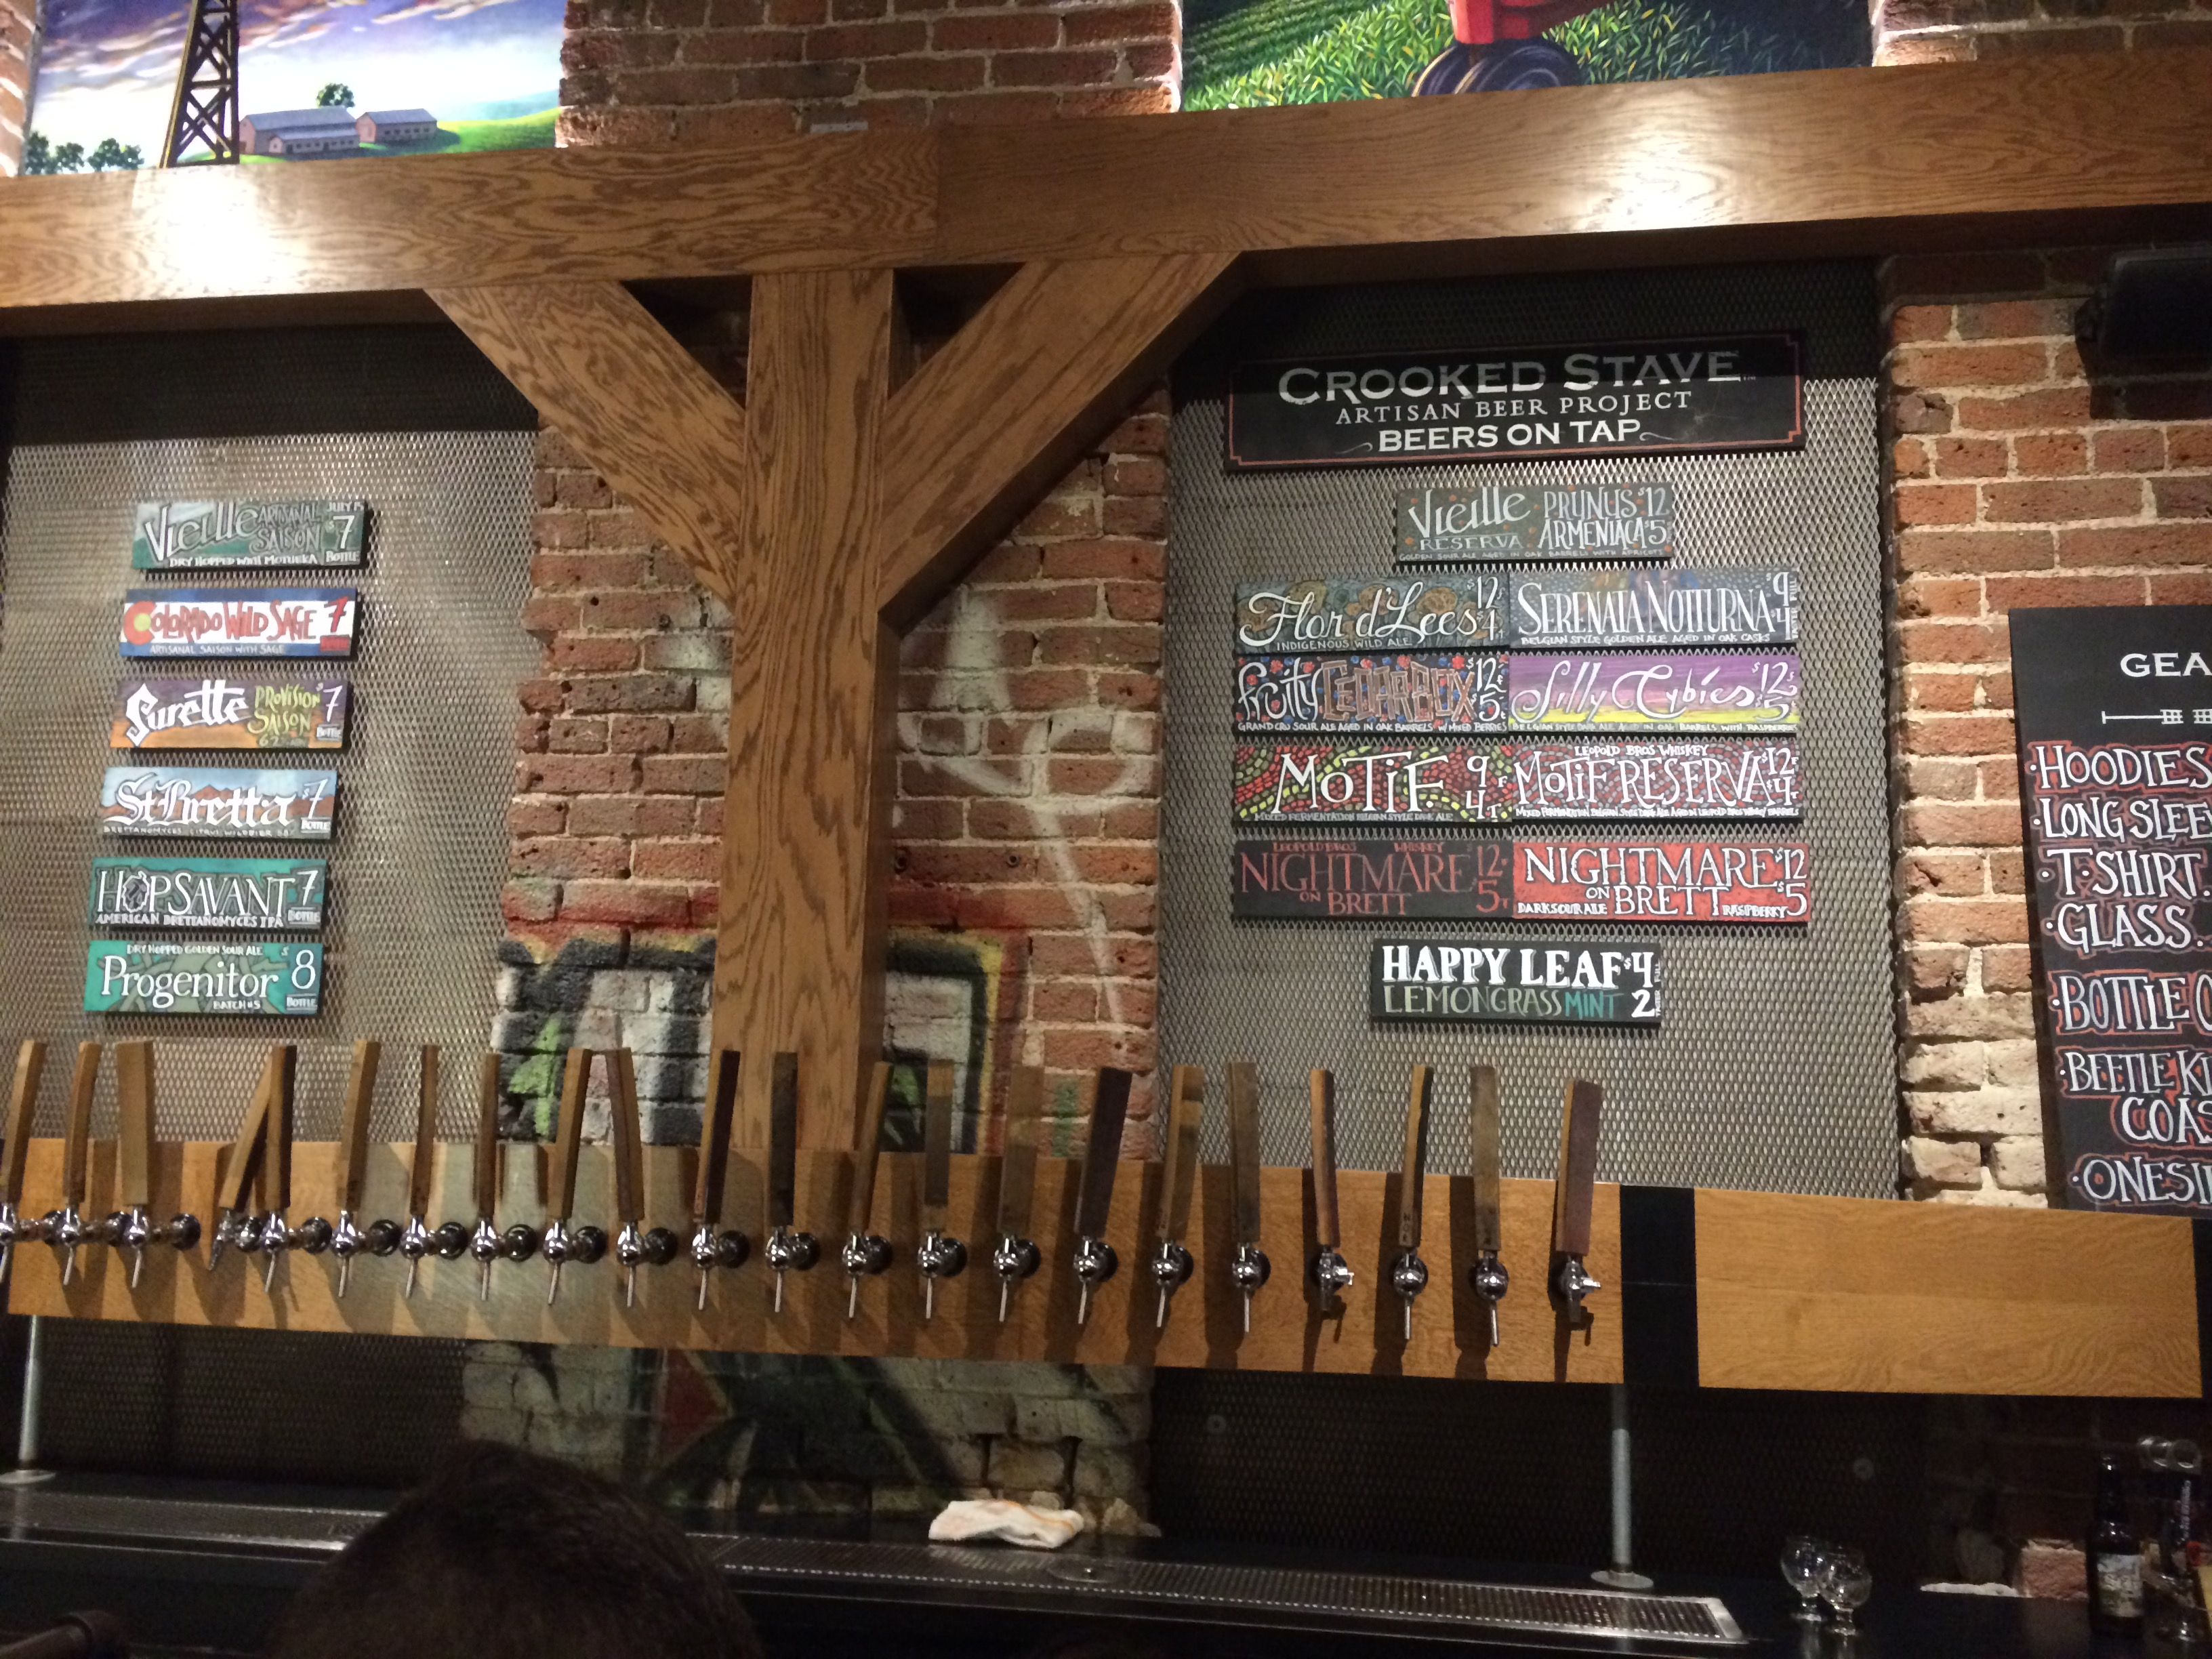 beer-the_crooked_stave-denver-co-bar-microbrewery-tf_tour__22_